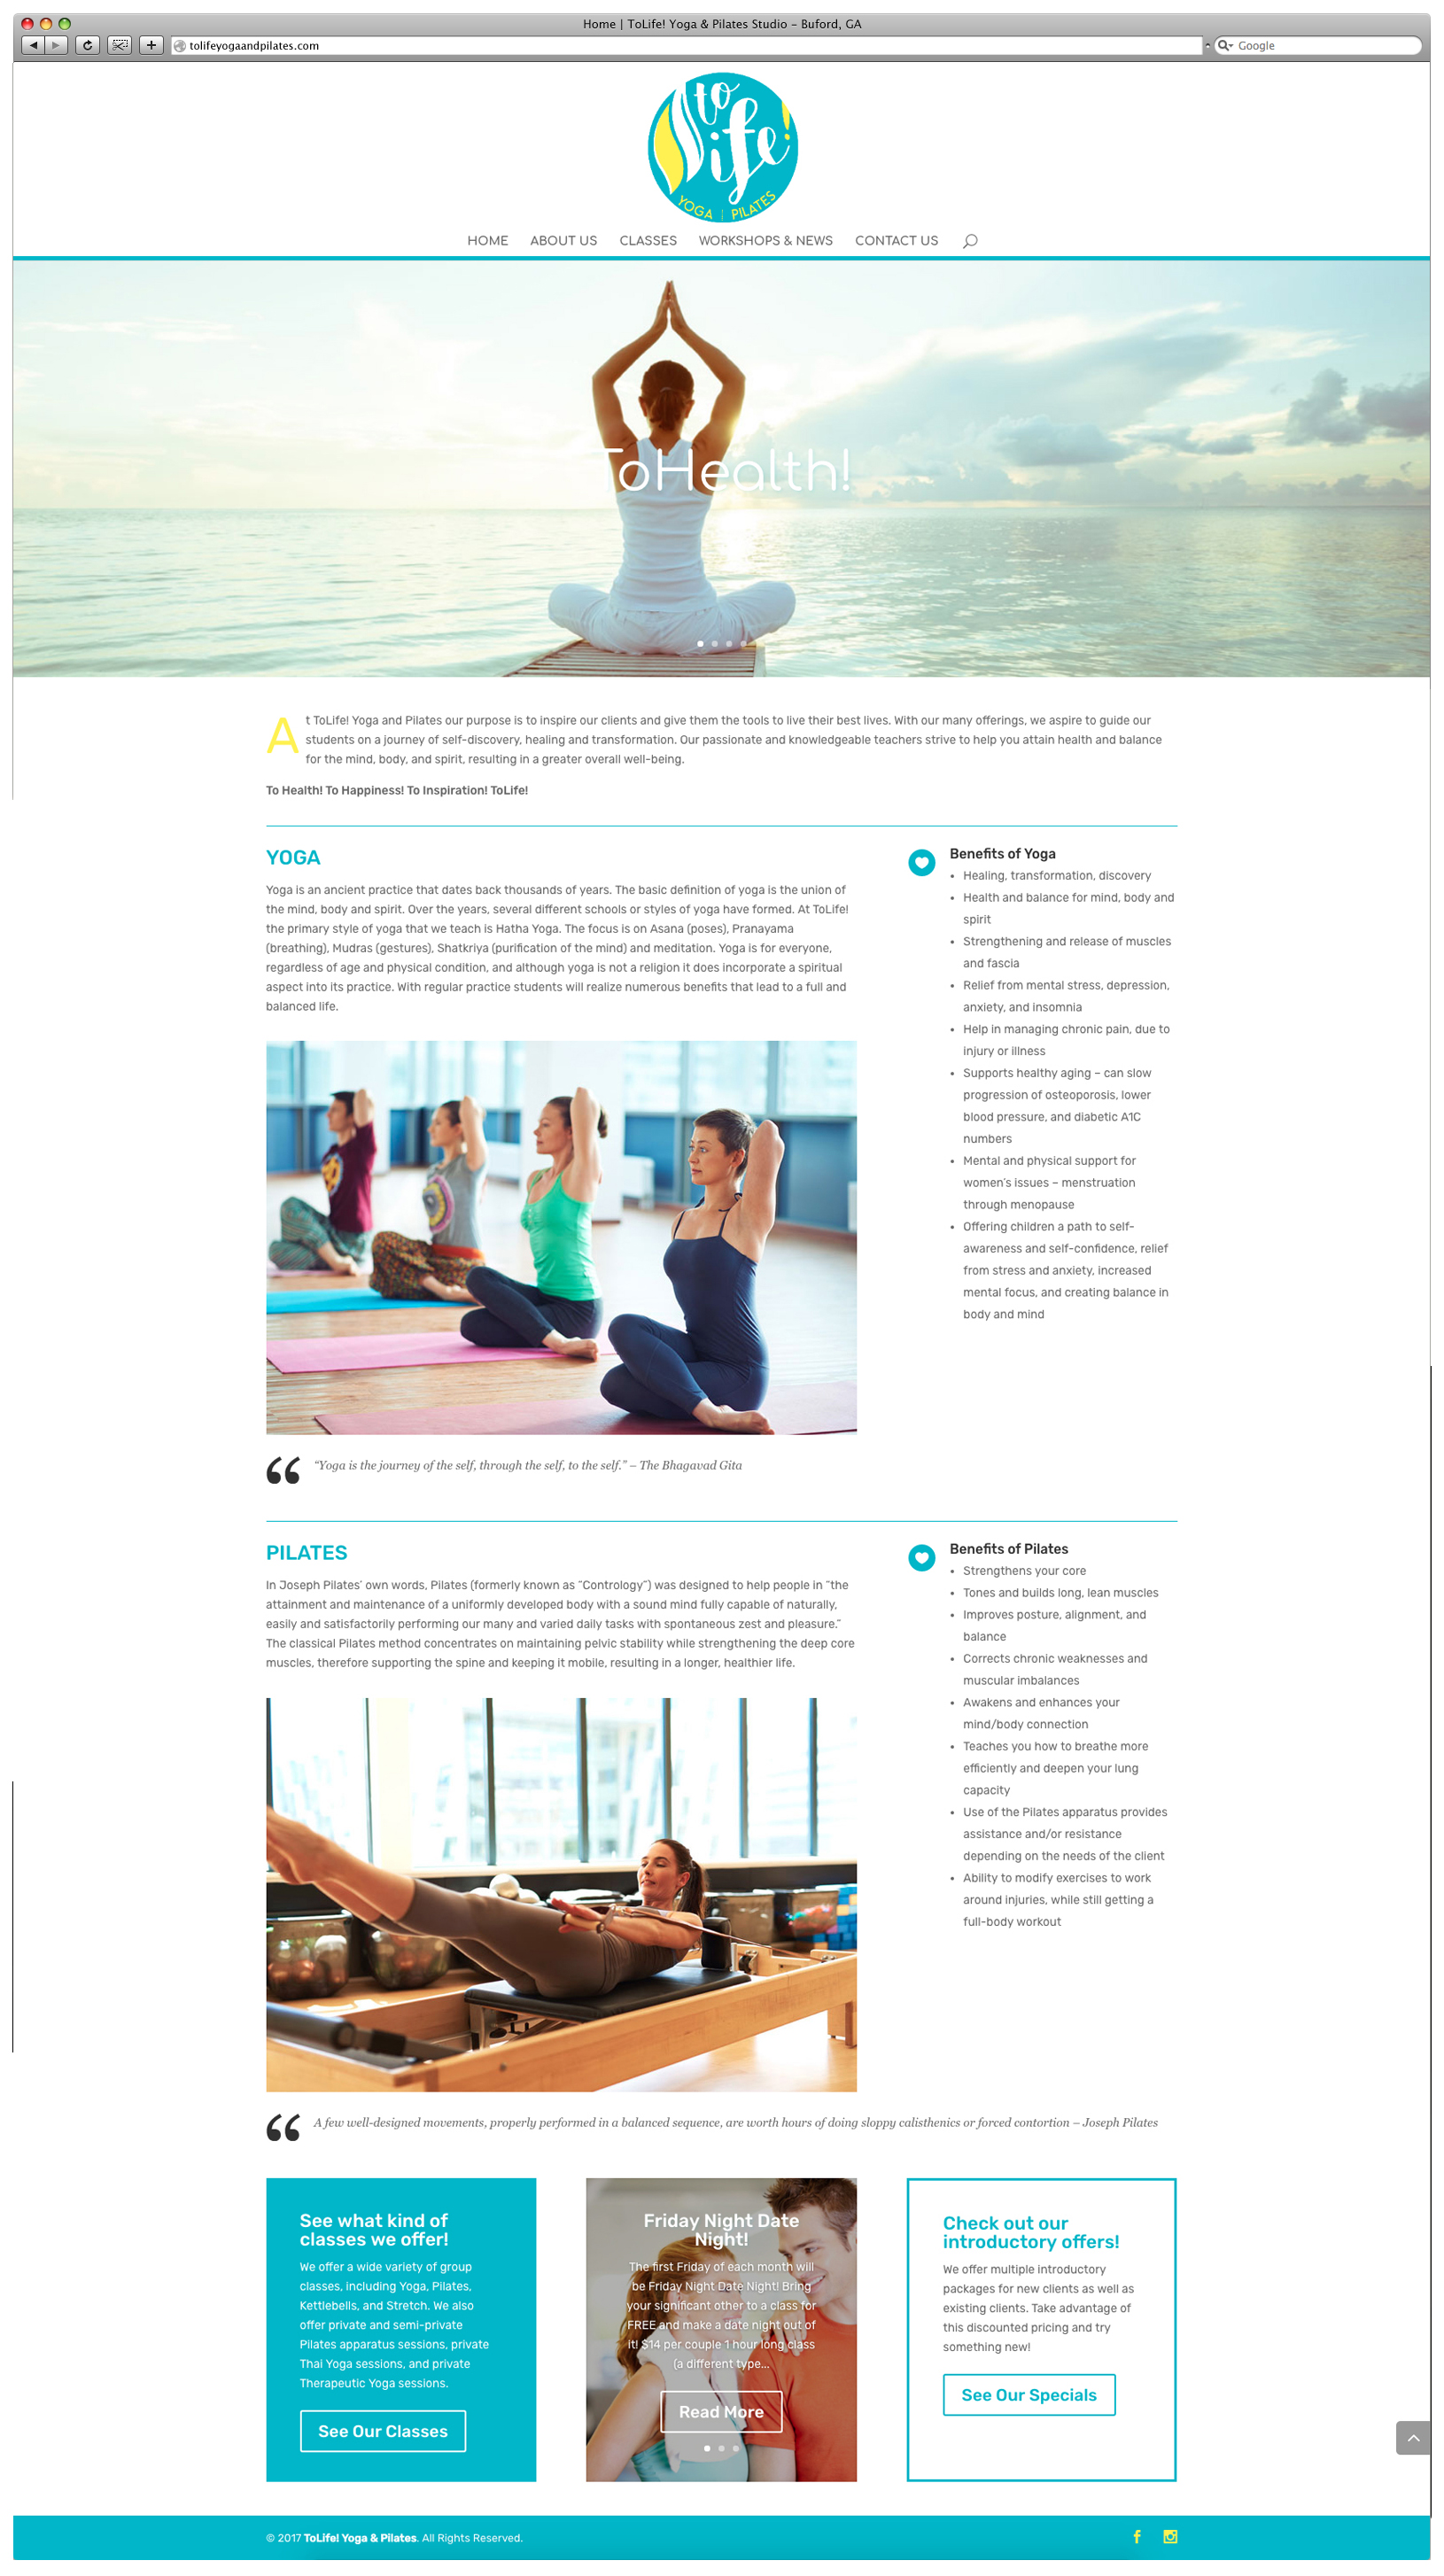 ToLife! Yoga and Pilates Website - Home